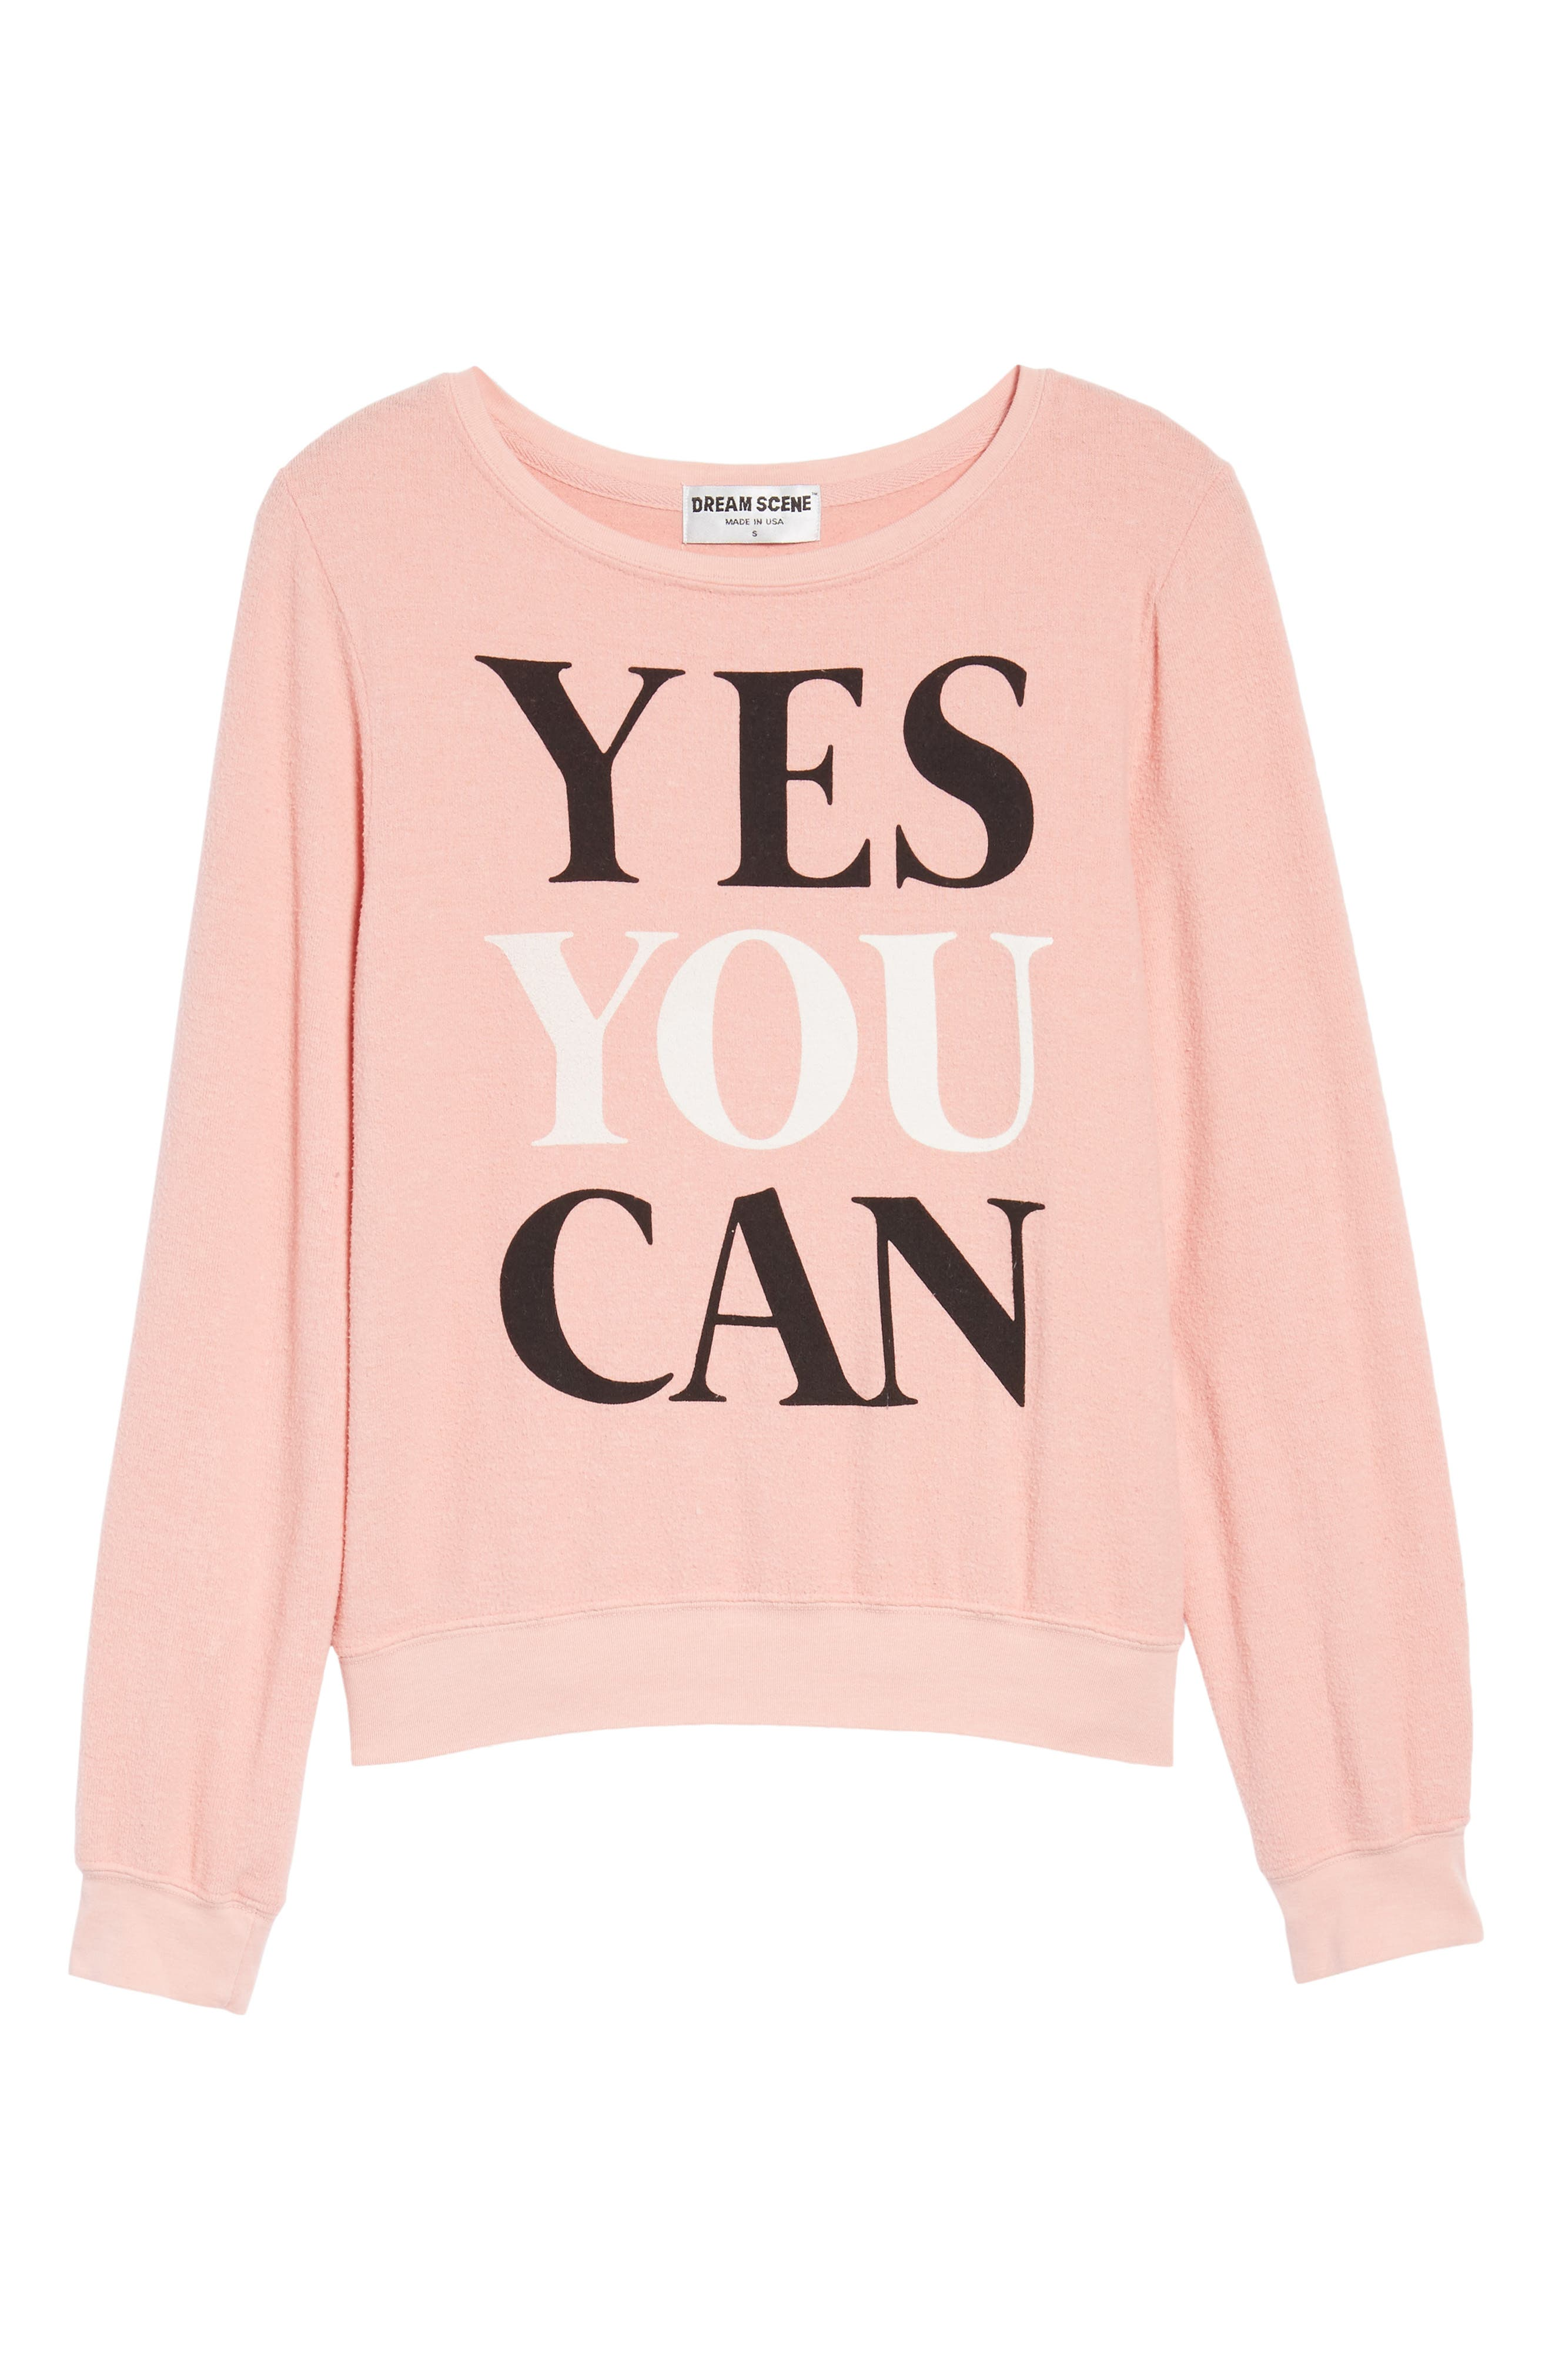 Yes You Can Sweatshirt,                             Alternate thumbnail 6, color,                             683